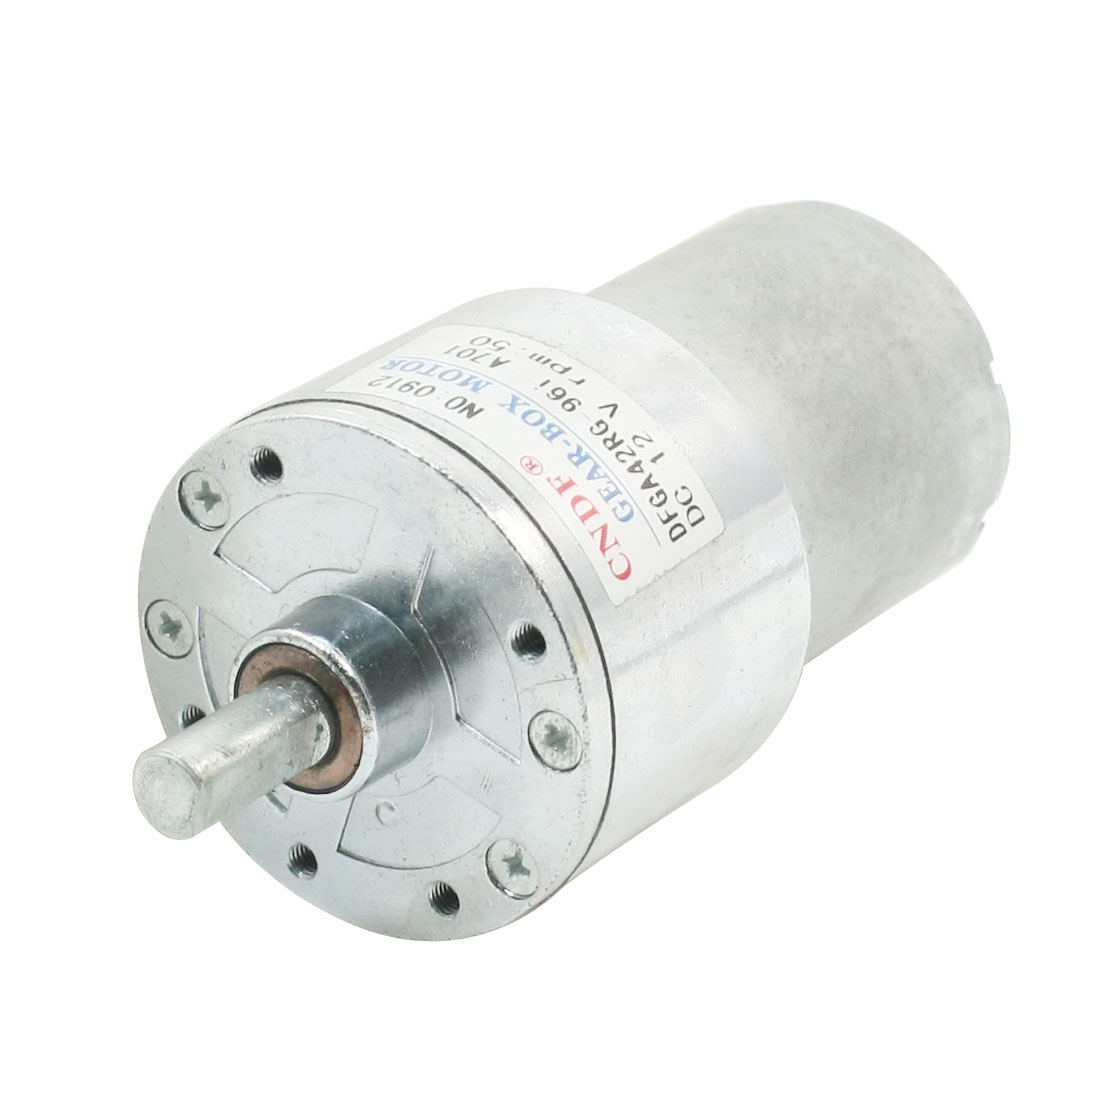 DFGA42RG DC12V 50RPM 15x7mm Shaft Gearbox Magnetic Electric Motor